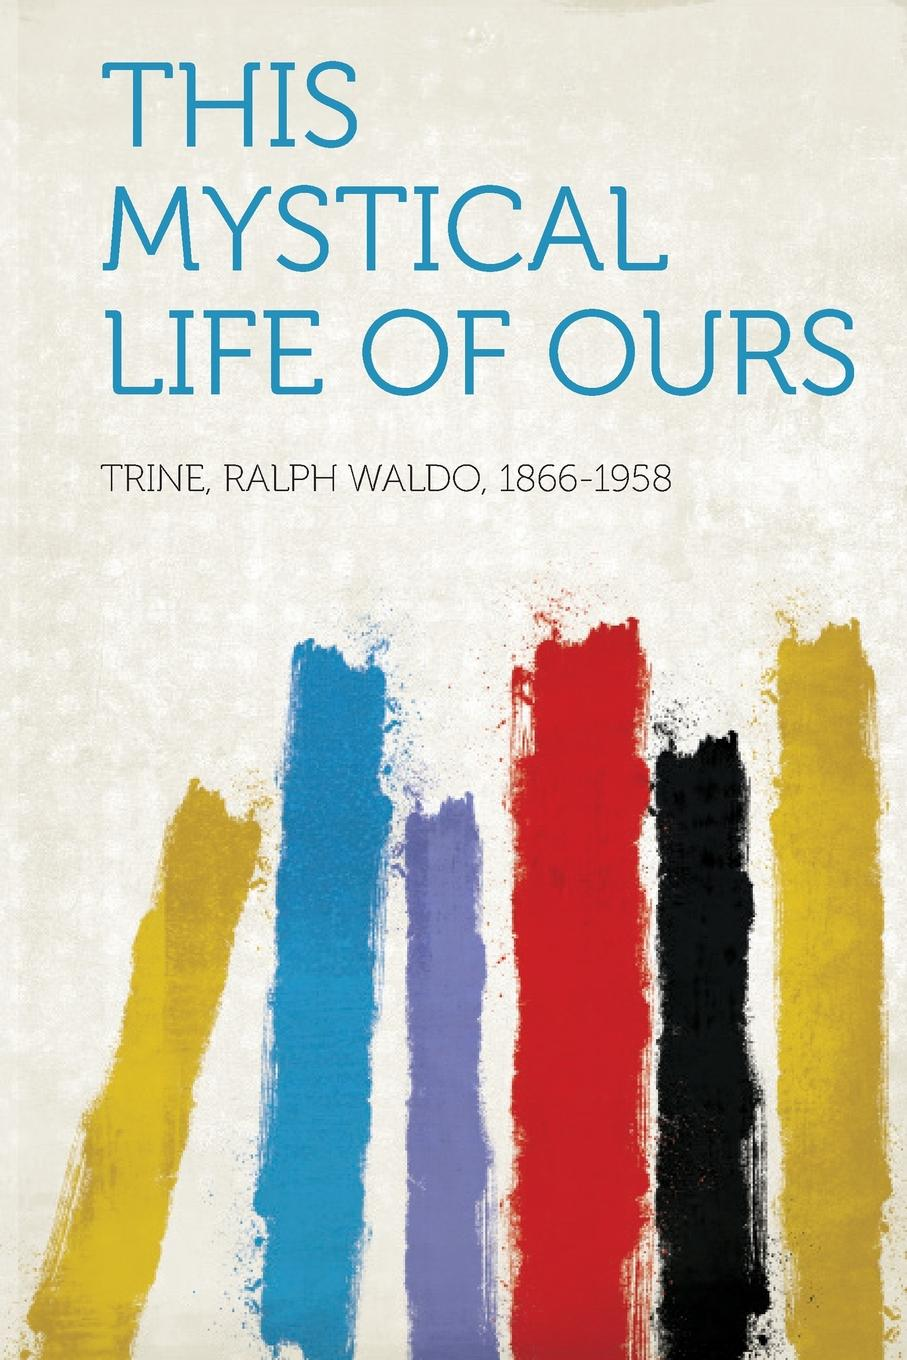 Trine Ralph Waldo 1866-1958 This Mystical Life of Ours these days are ours